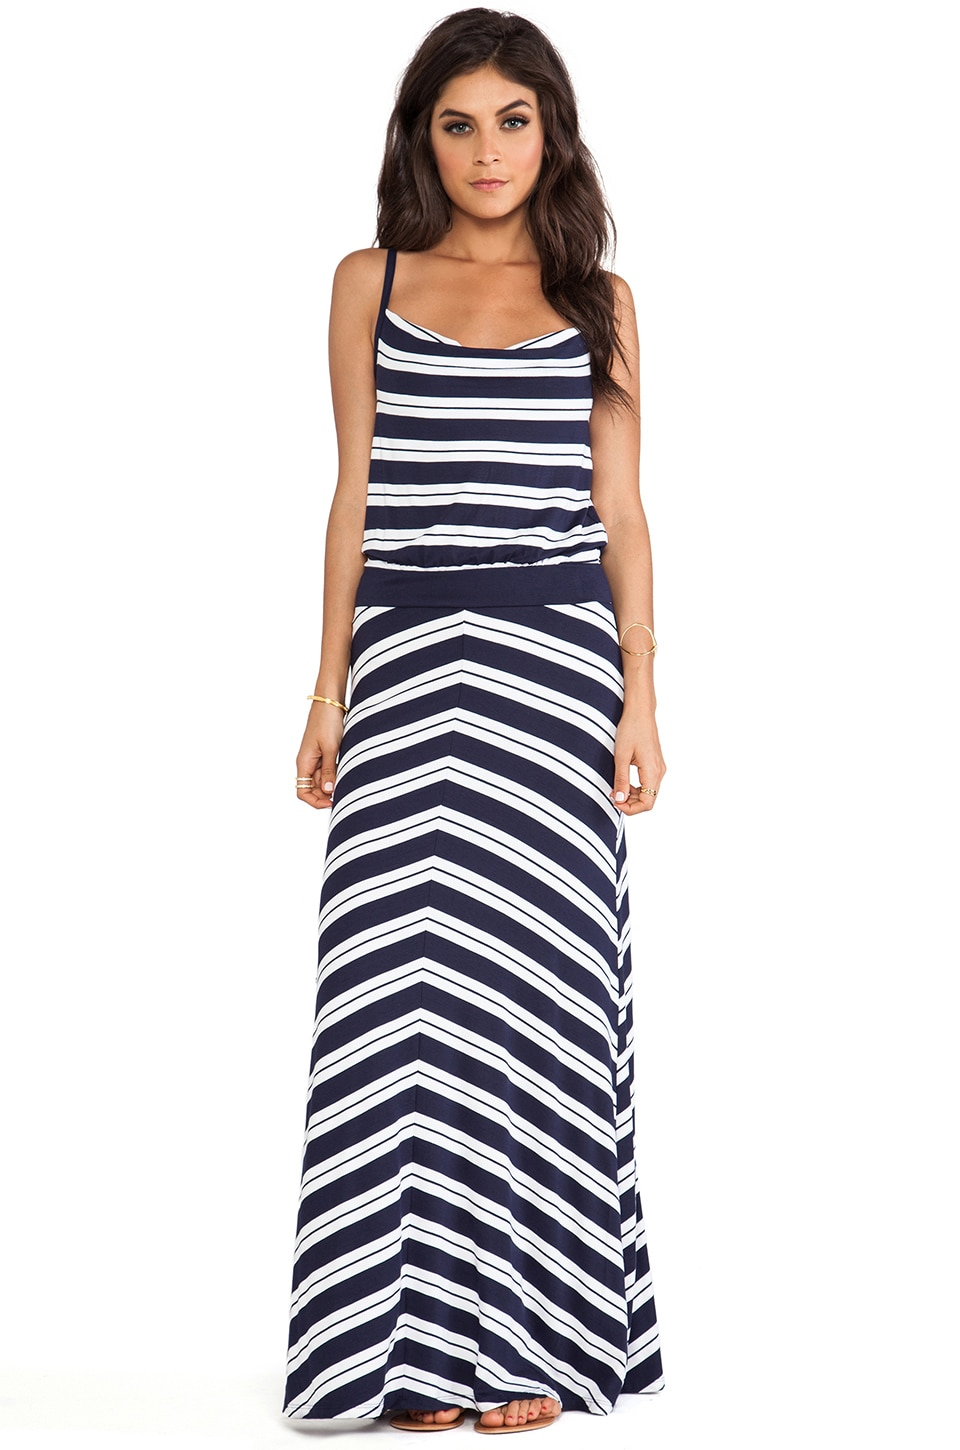 Michael Stars Hope Sleeveless Maxi Dress in Navy & White